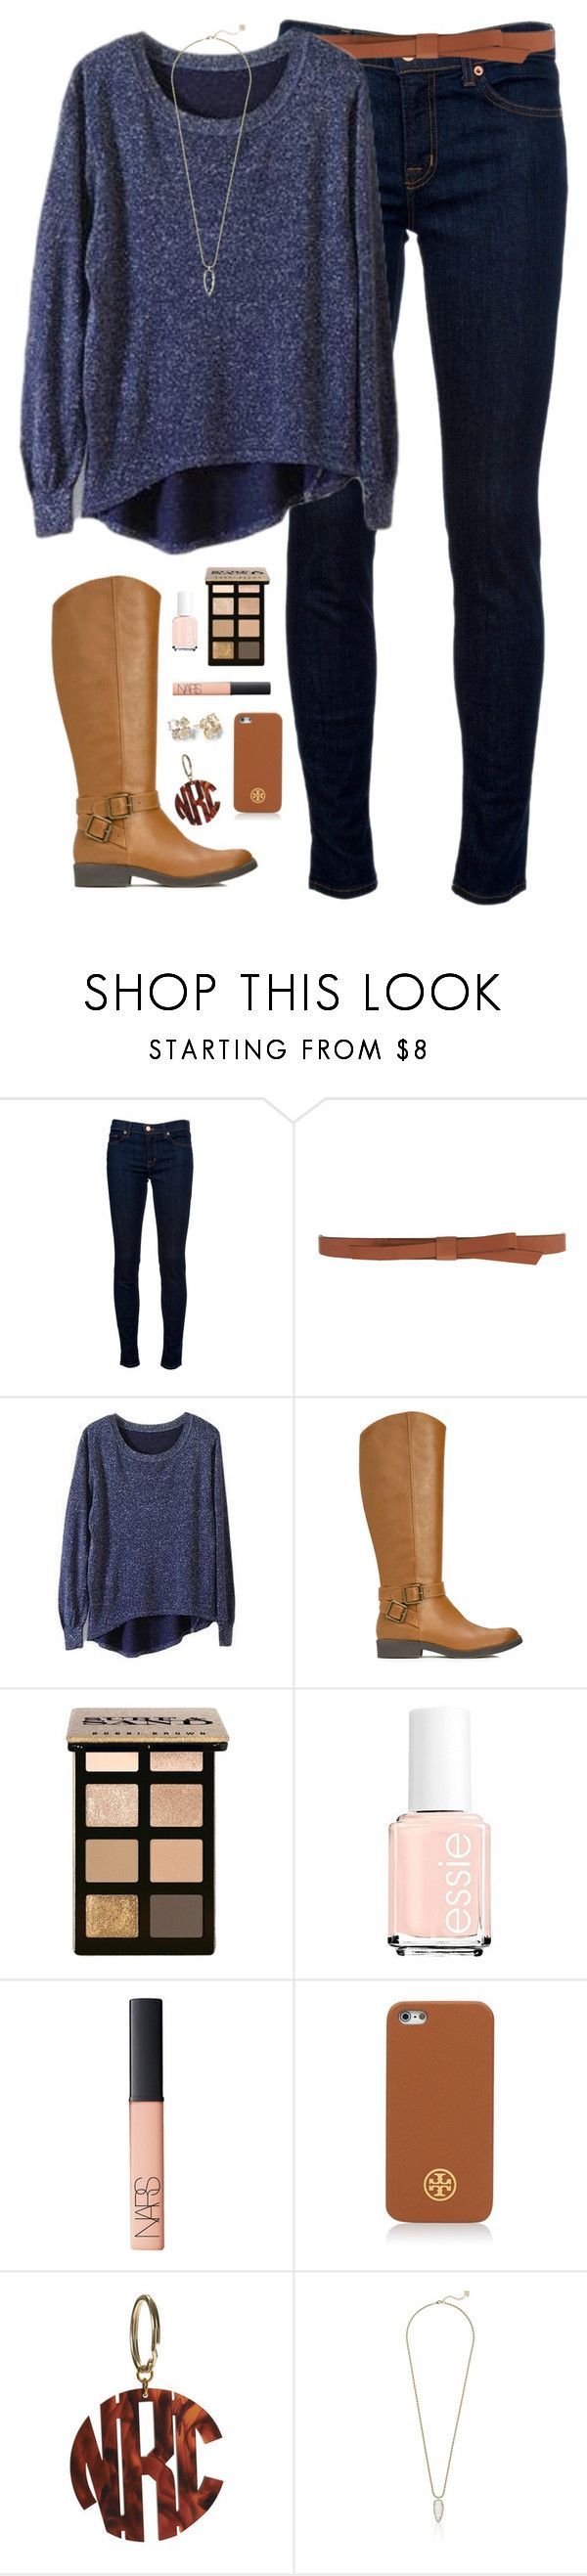 """not so cold winter day"" by classically-preppy ❤ liked on Polyvore featuring J Brand, Ganni, JustFab, Bobbi Brown Cosmetics, Essie, NARS Cosmetics, Kate Spade, Tory Burch and Kendra Scott"